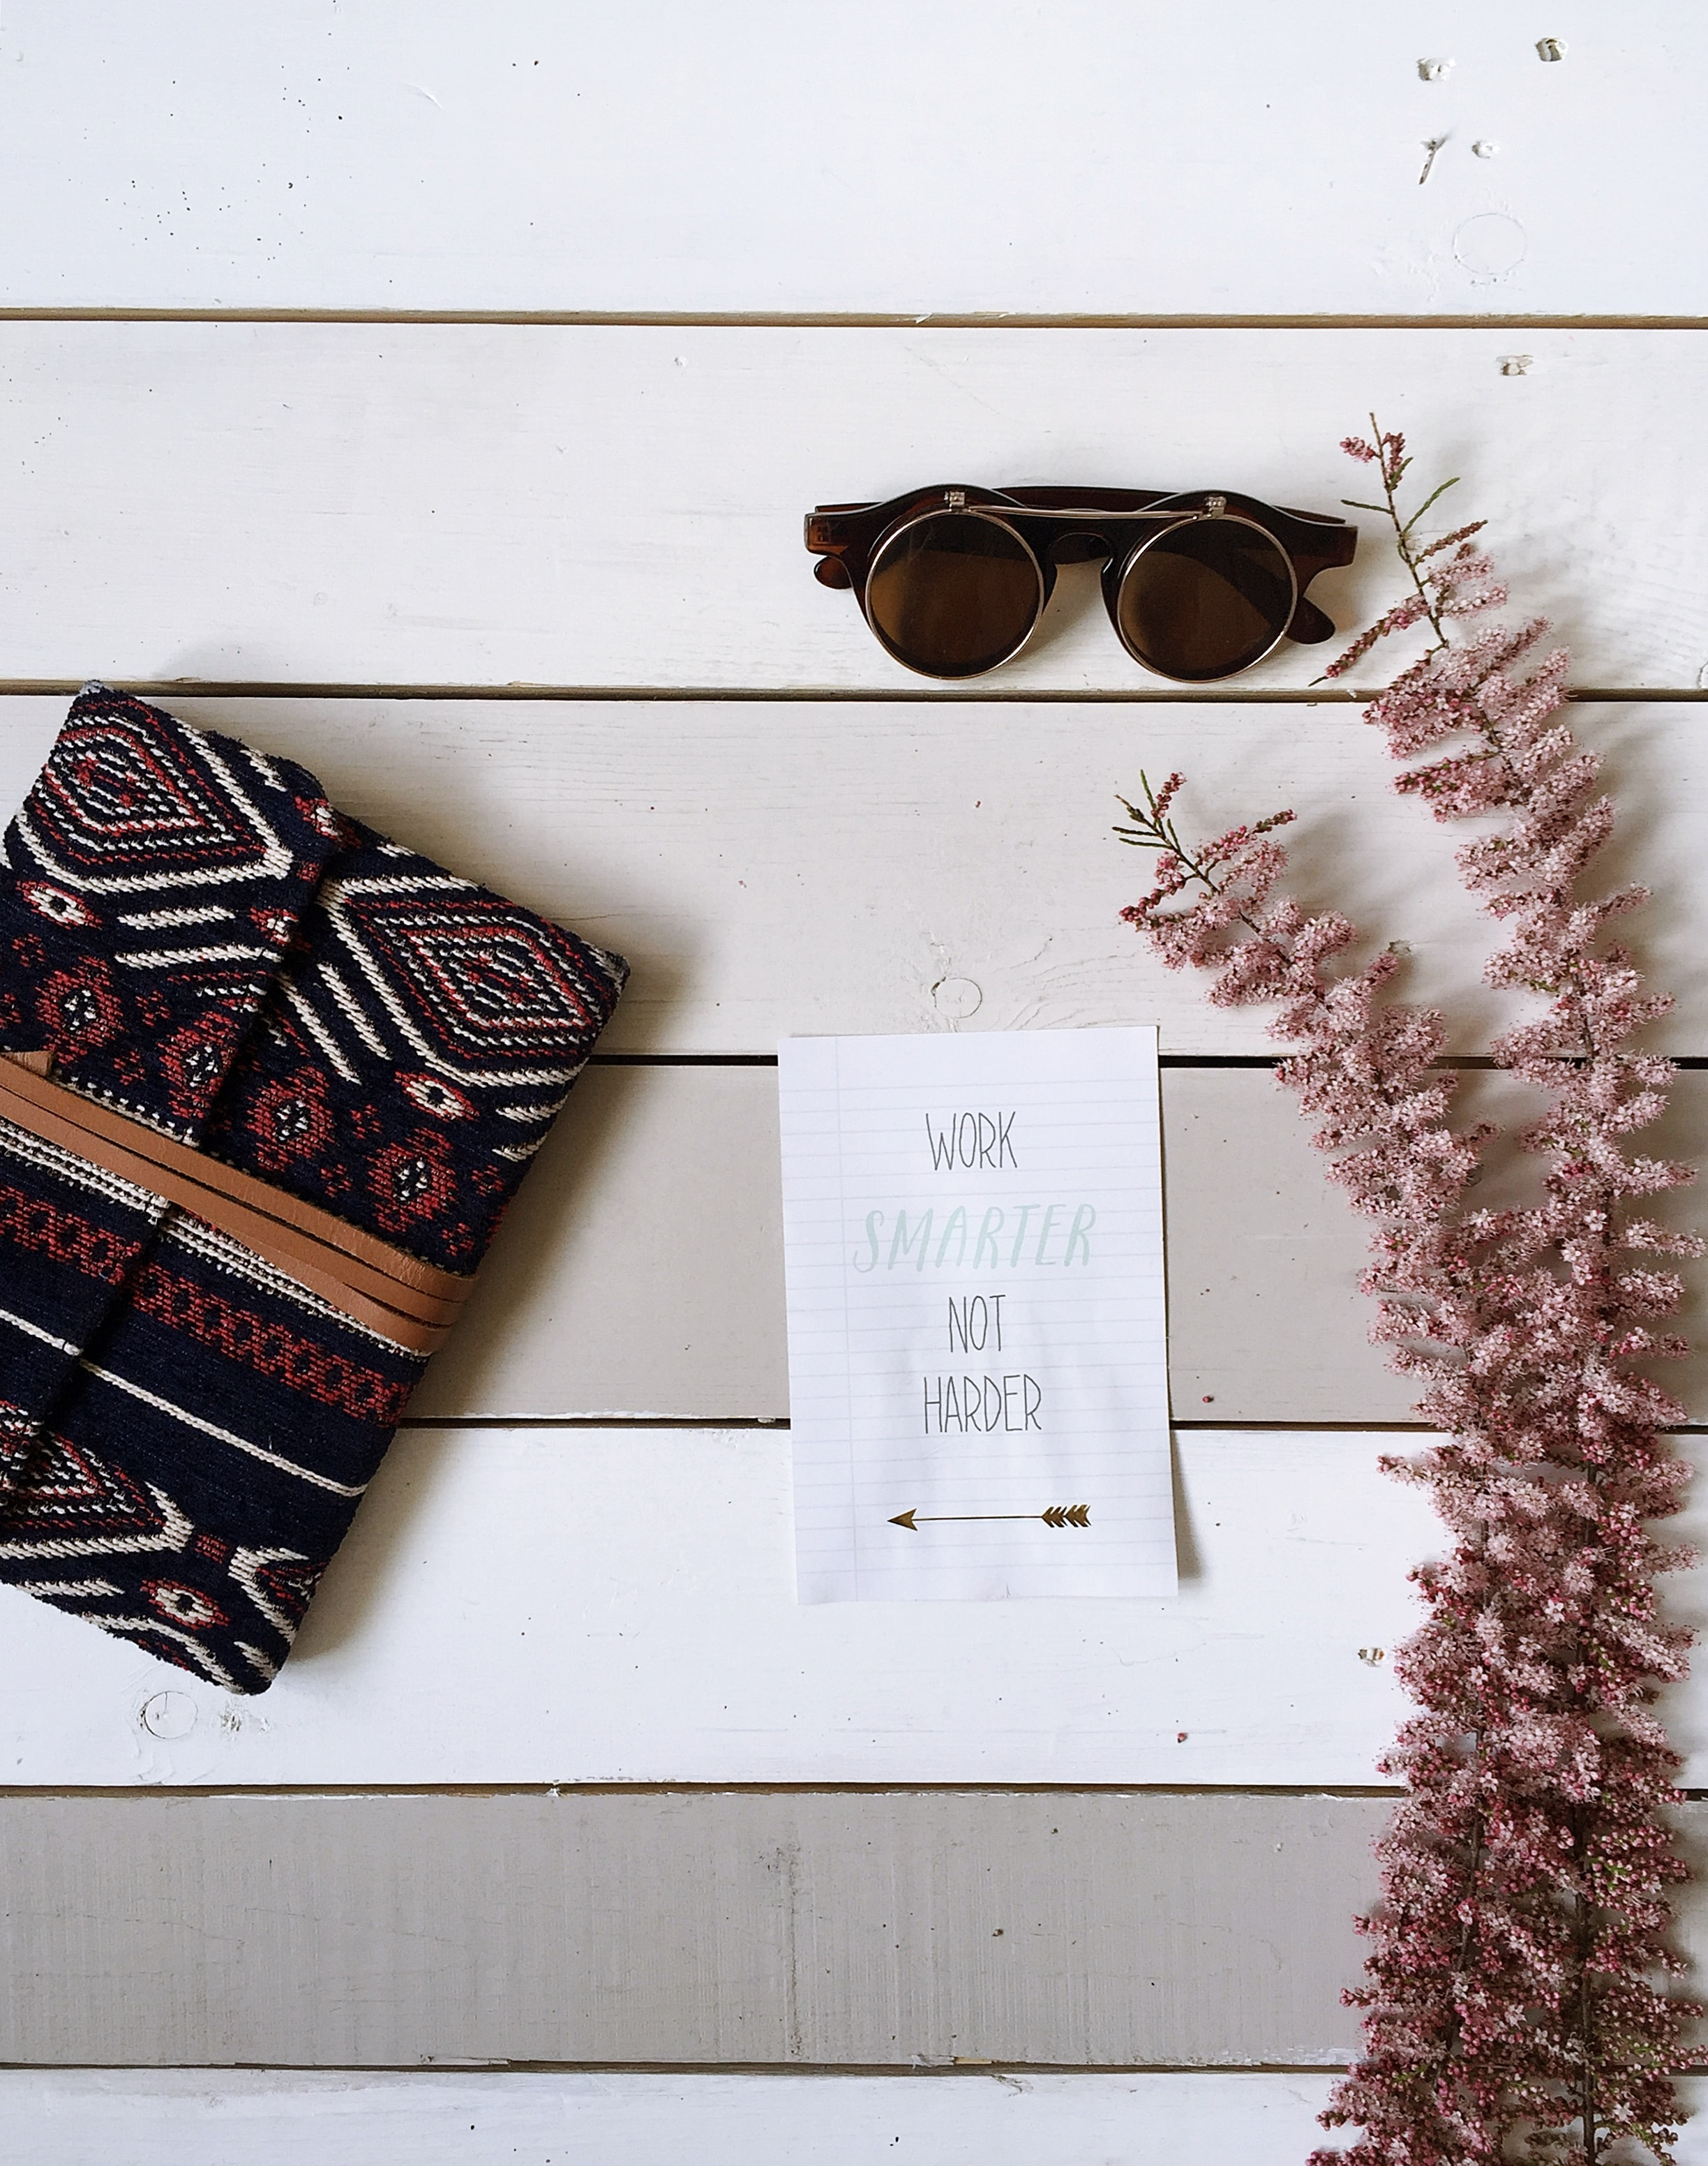 """A flatlay image of flowers, a notebook, a piece of paper that says """"Work smarter not harder,"""" and a pair of glasses."""